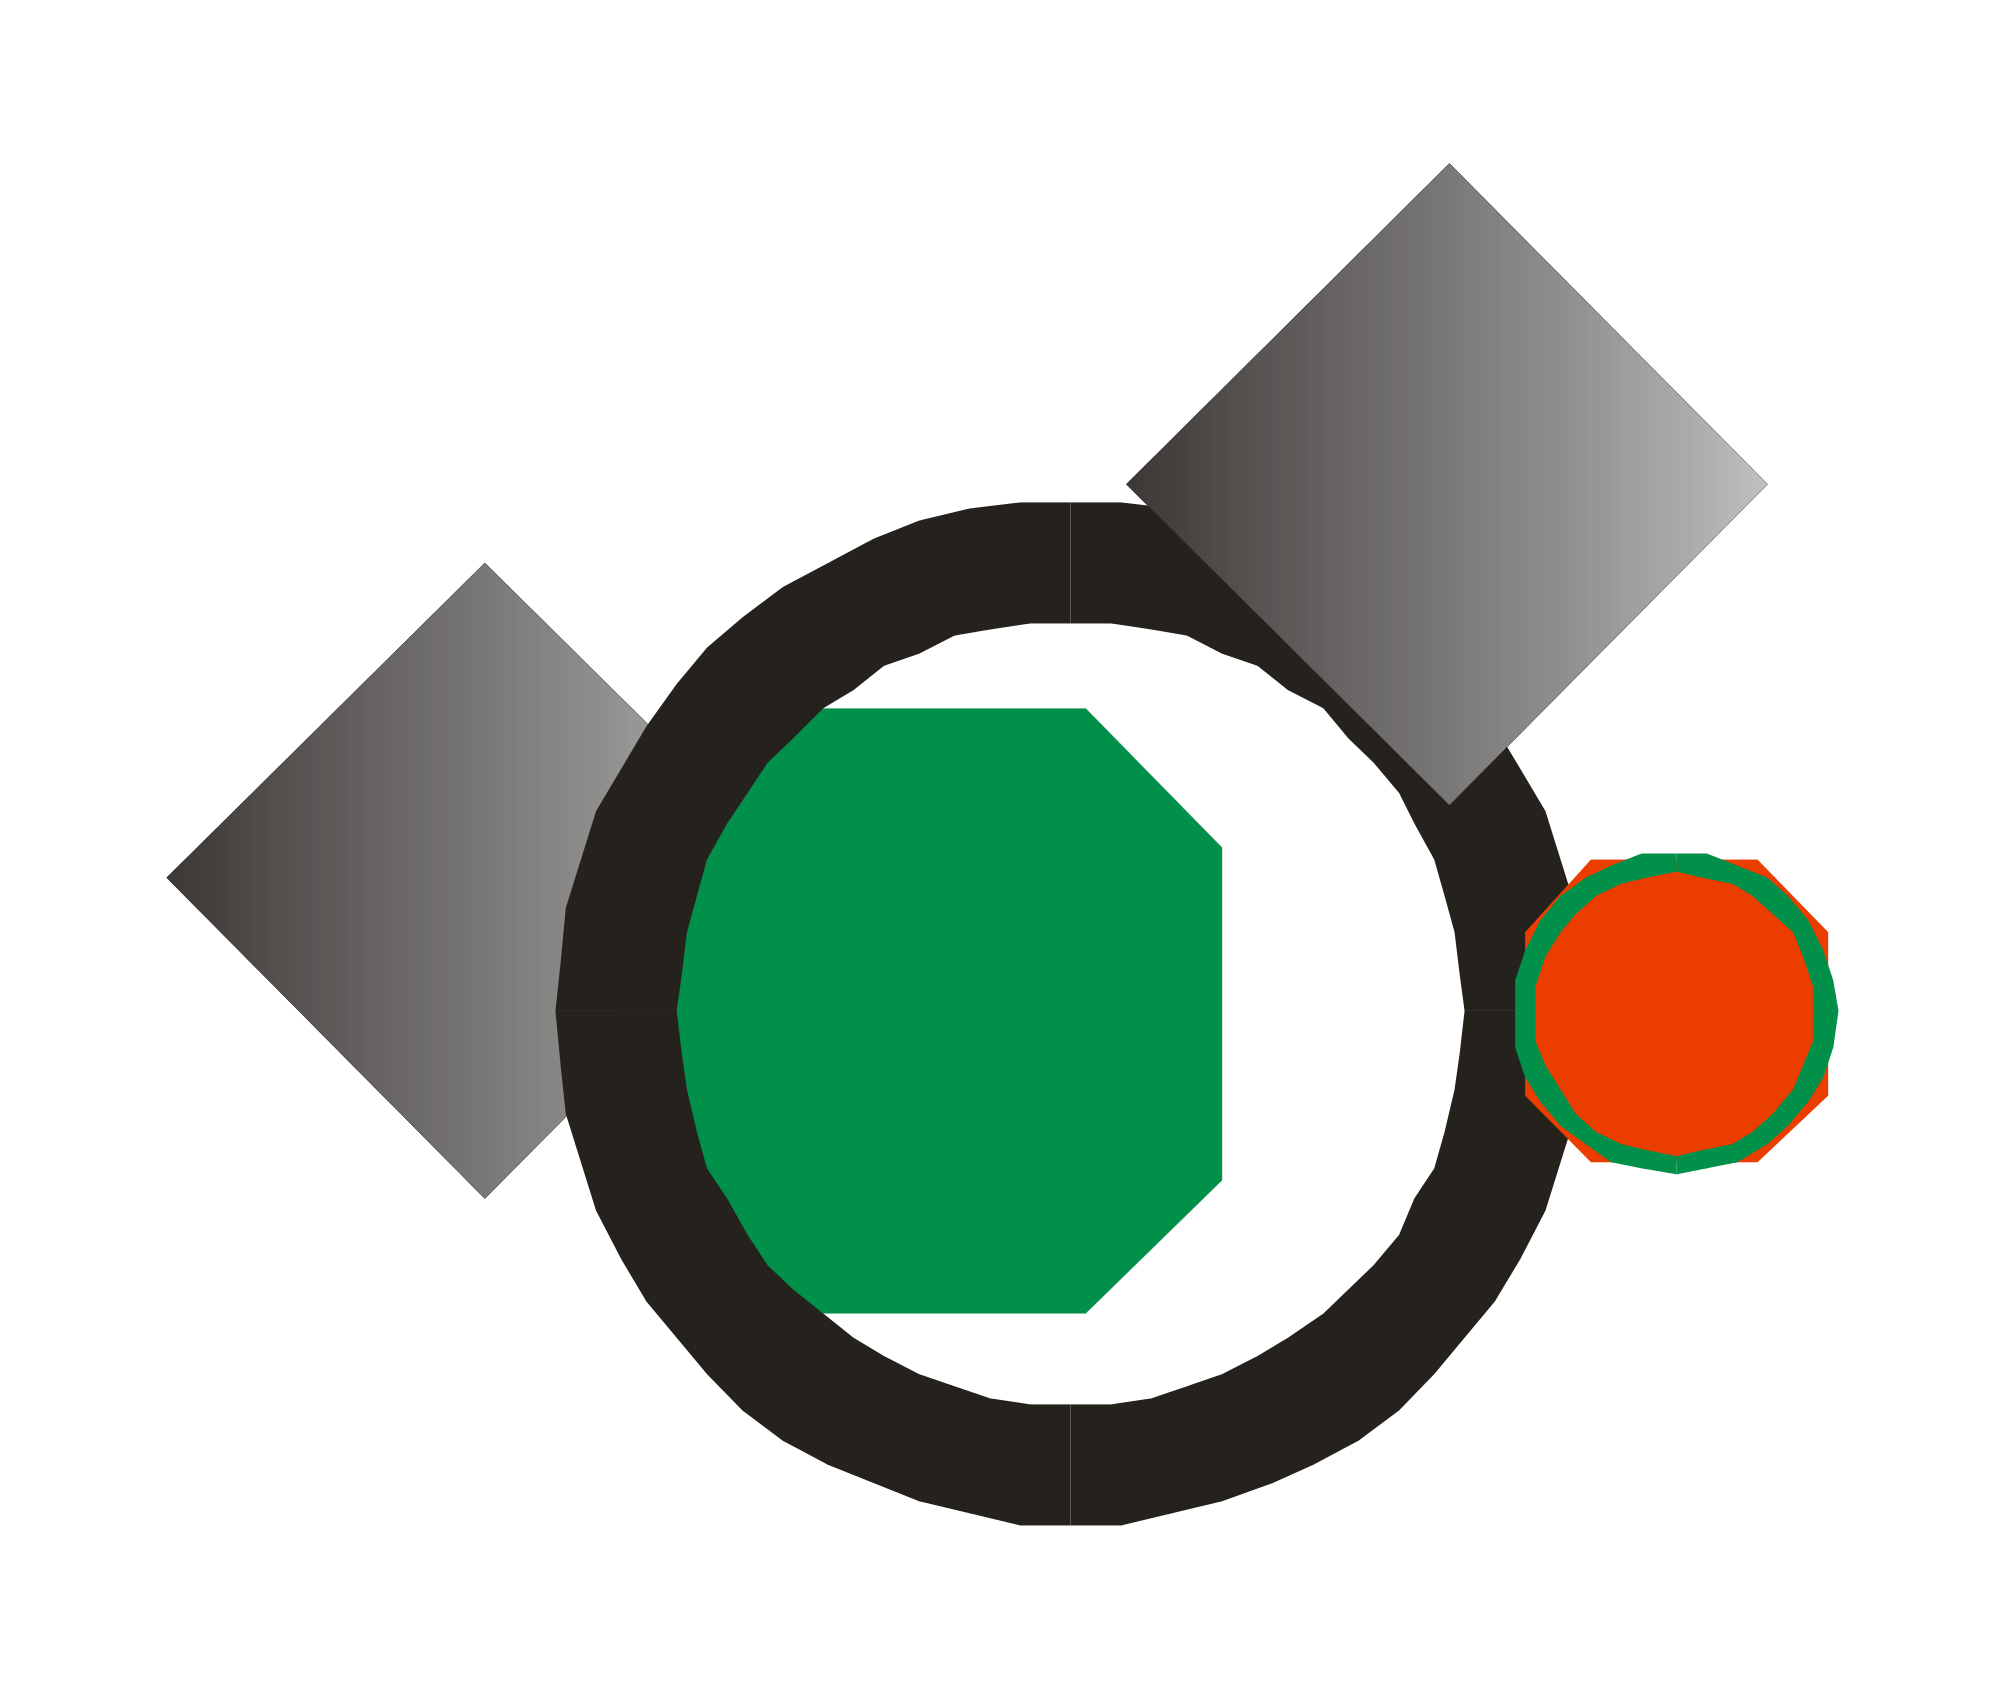 Svg test. File wikimedia commons open